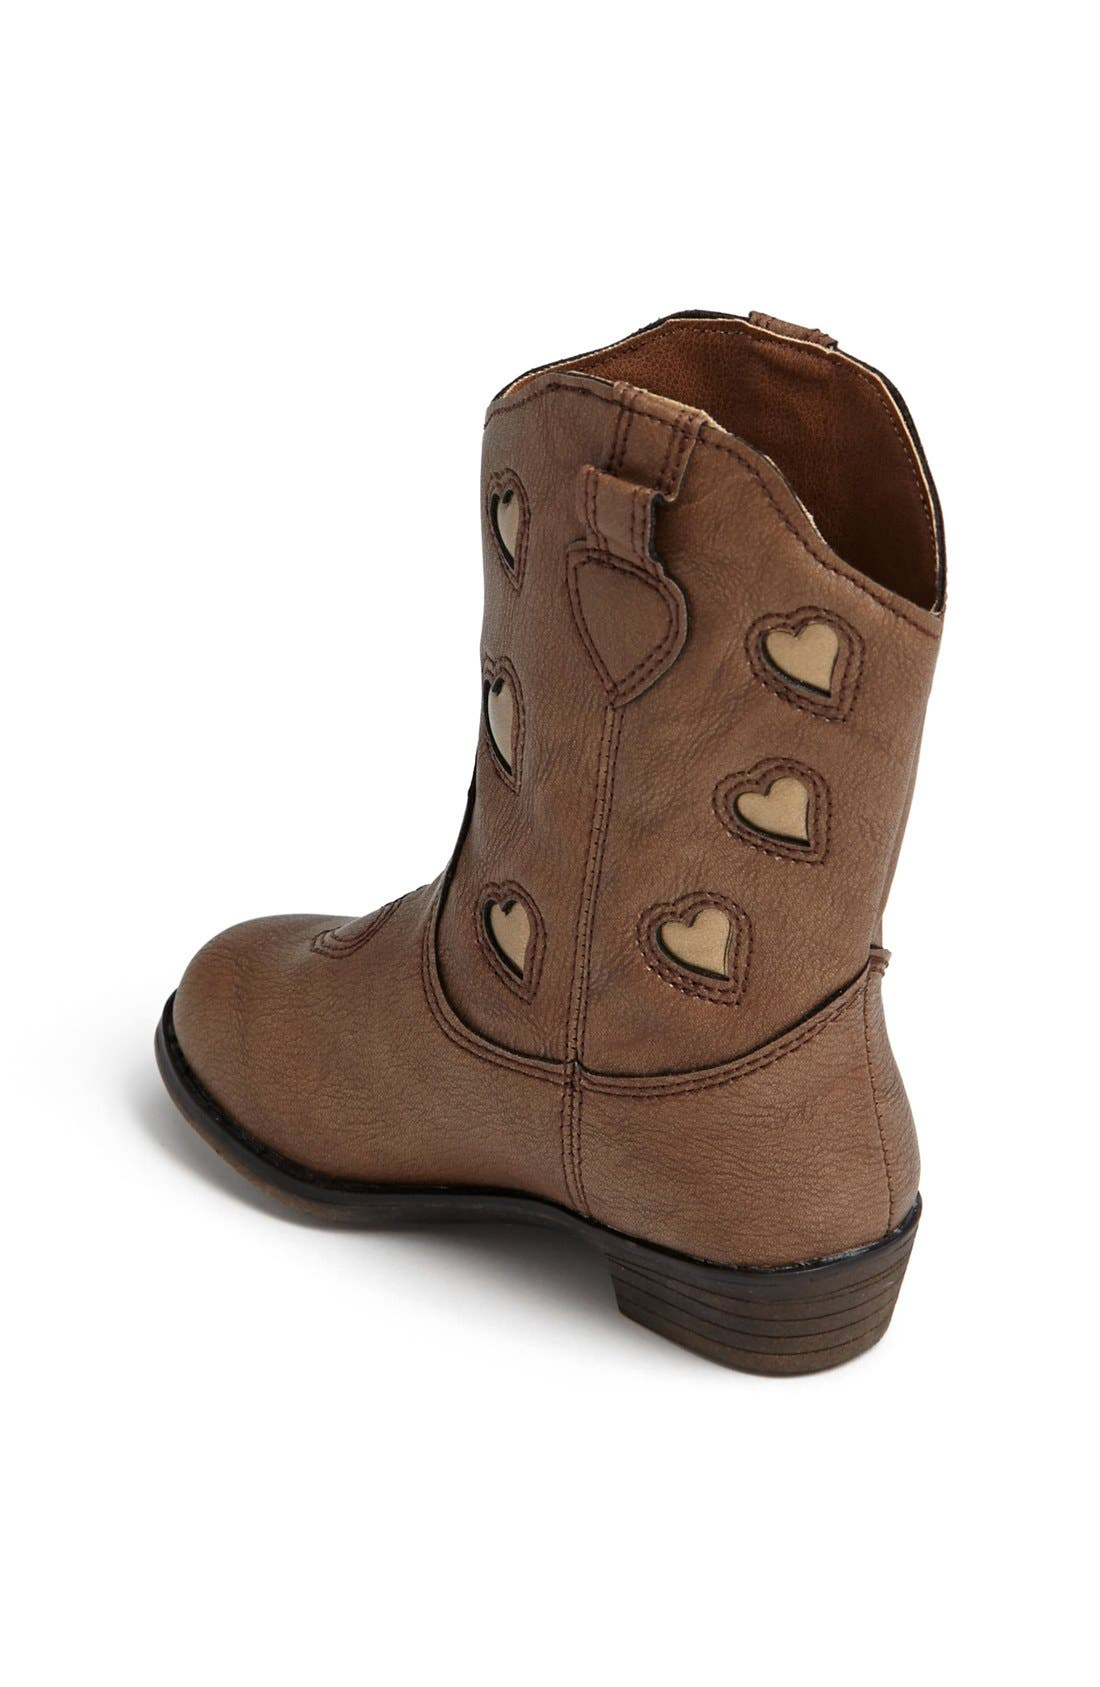 Alternate Image 2  - Jessica Simpson 'Kendelle' Boot (Walker & Toddler)